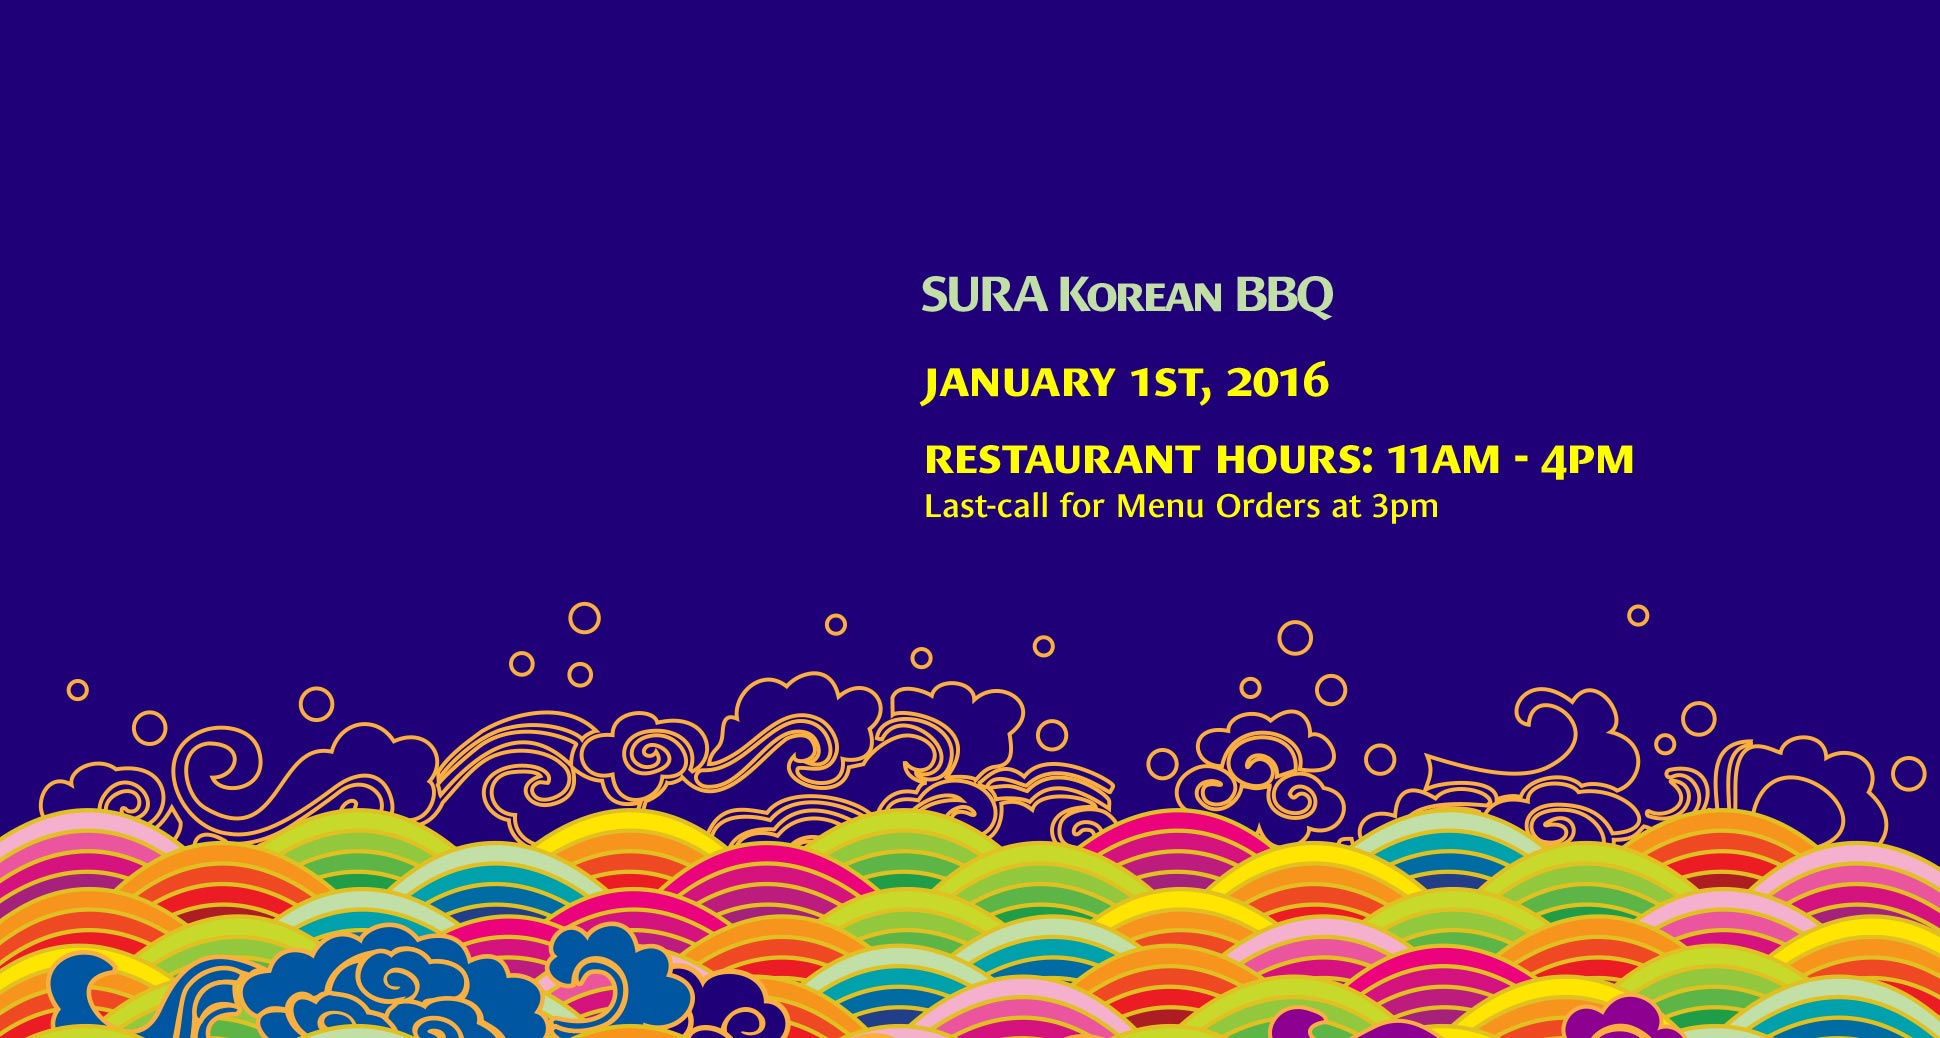 Happy new year! Restaurant hours on January 1st, 2016